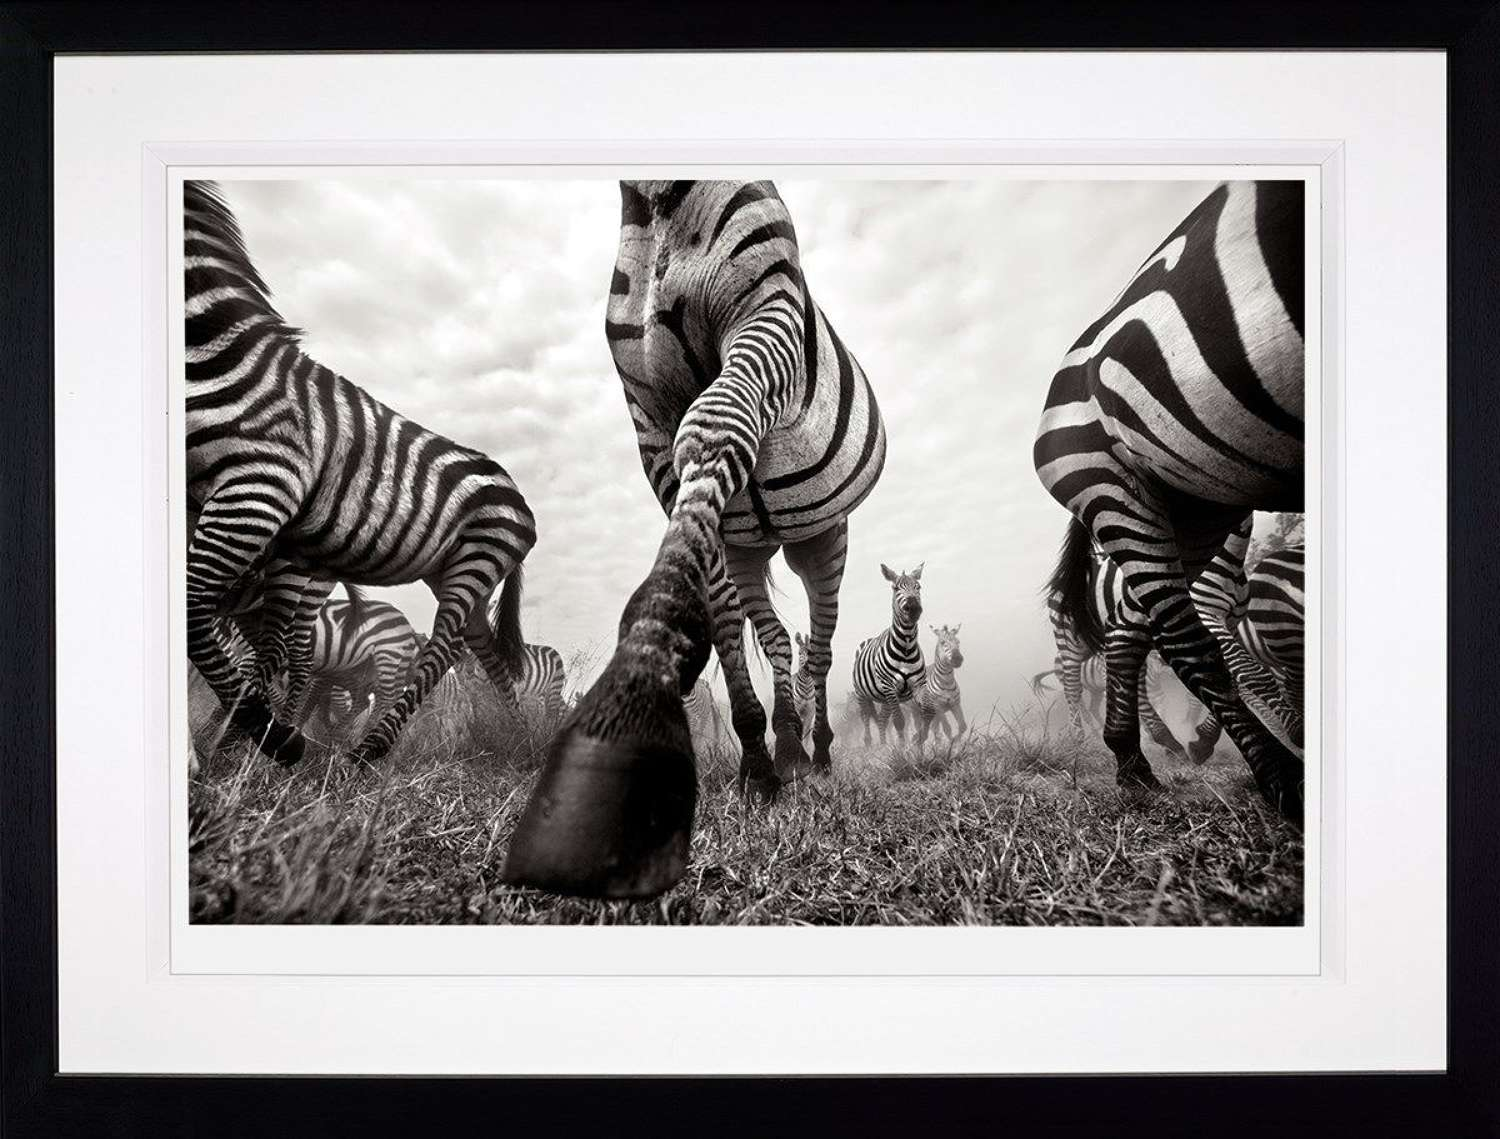 Onward - (Deluxe) - Framed Photographic Art Print by Anup Shah